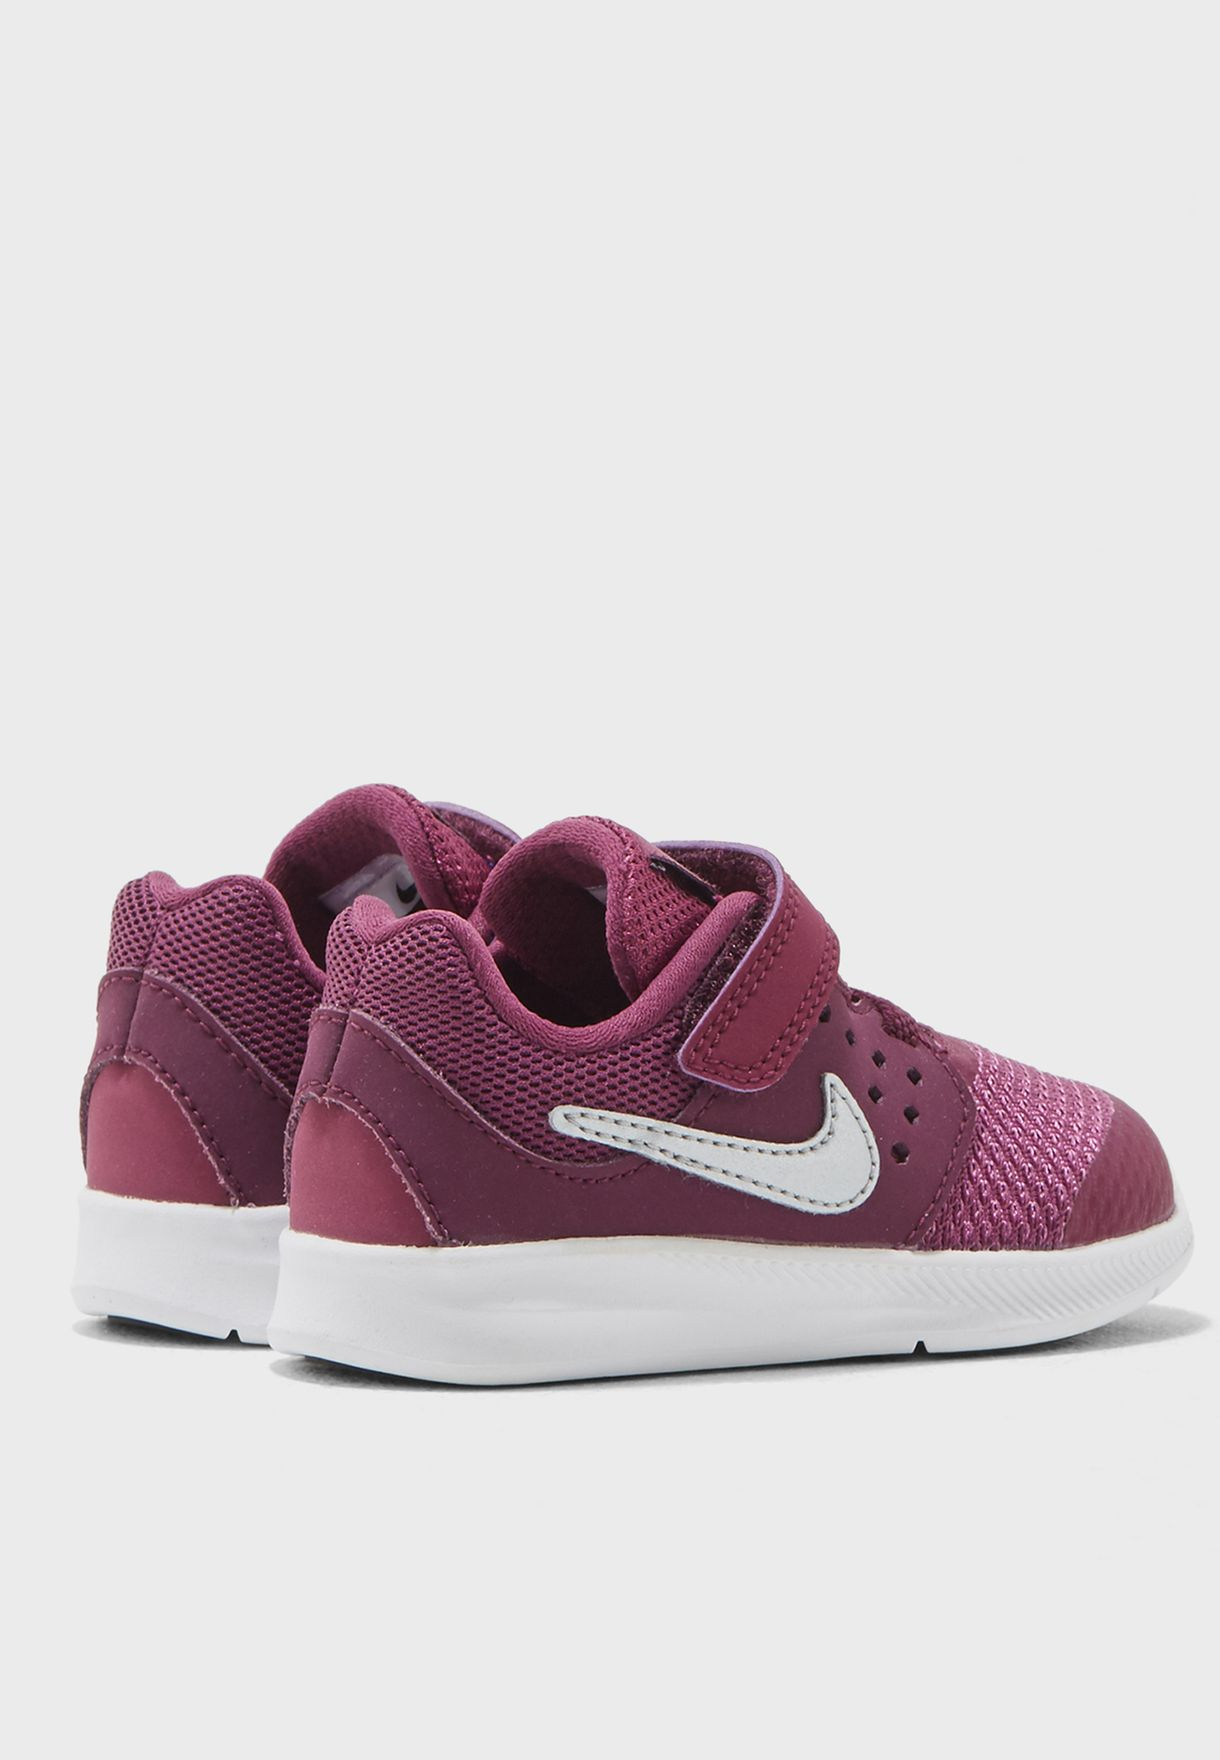 2caaee71235 Shop Nike burgundy Downshifter 7 Infant 869971-601 for Kids in UAE ...